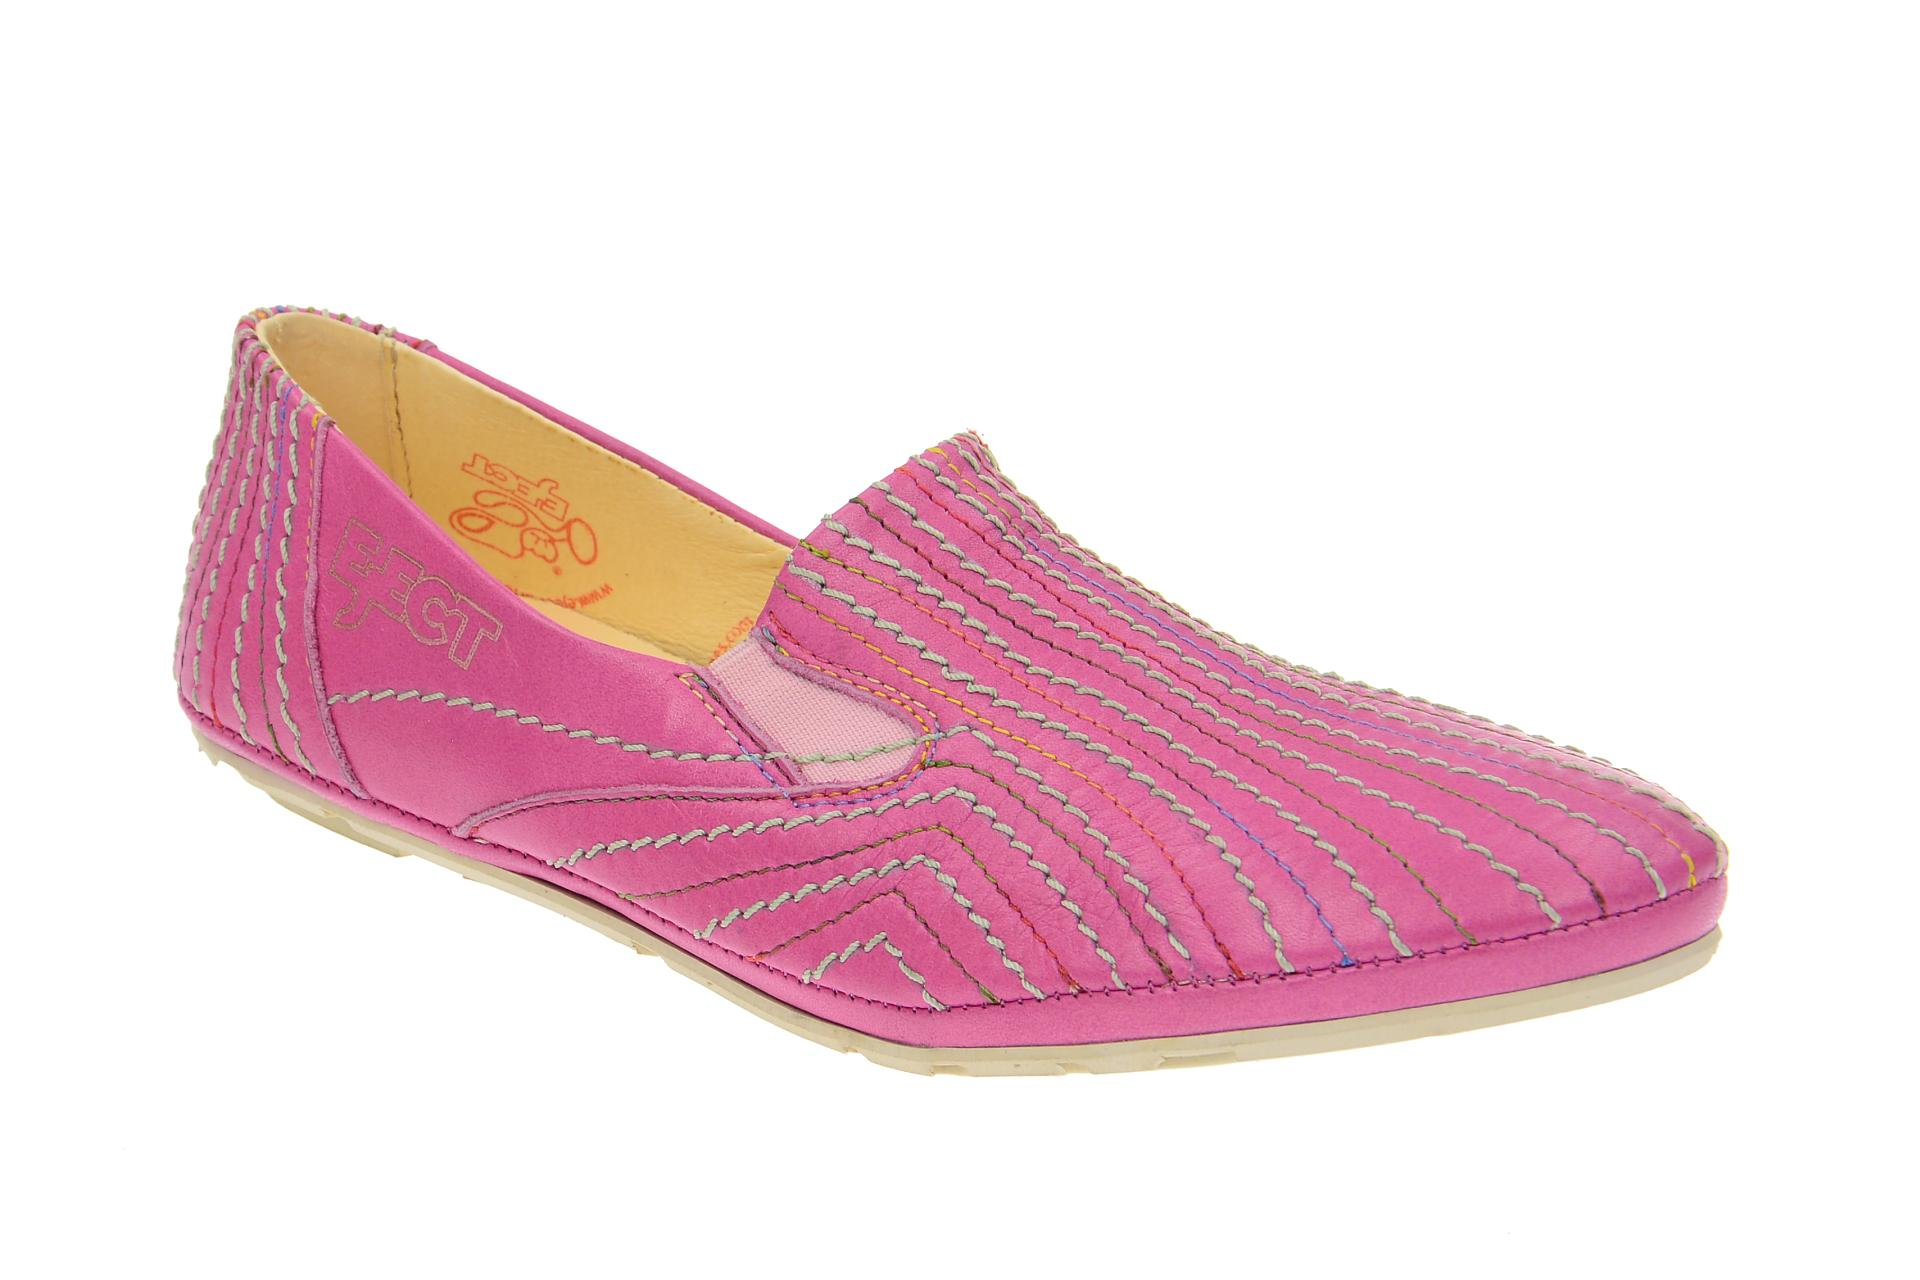 damen halbschuhe eject confy slipper pink echtleder schuhe sommer 2015 ebay. Black Bedroom Furniture Sets. Home Design Ideas